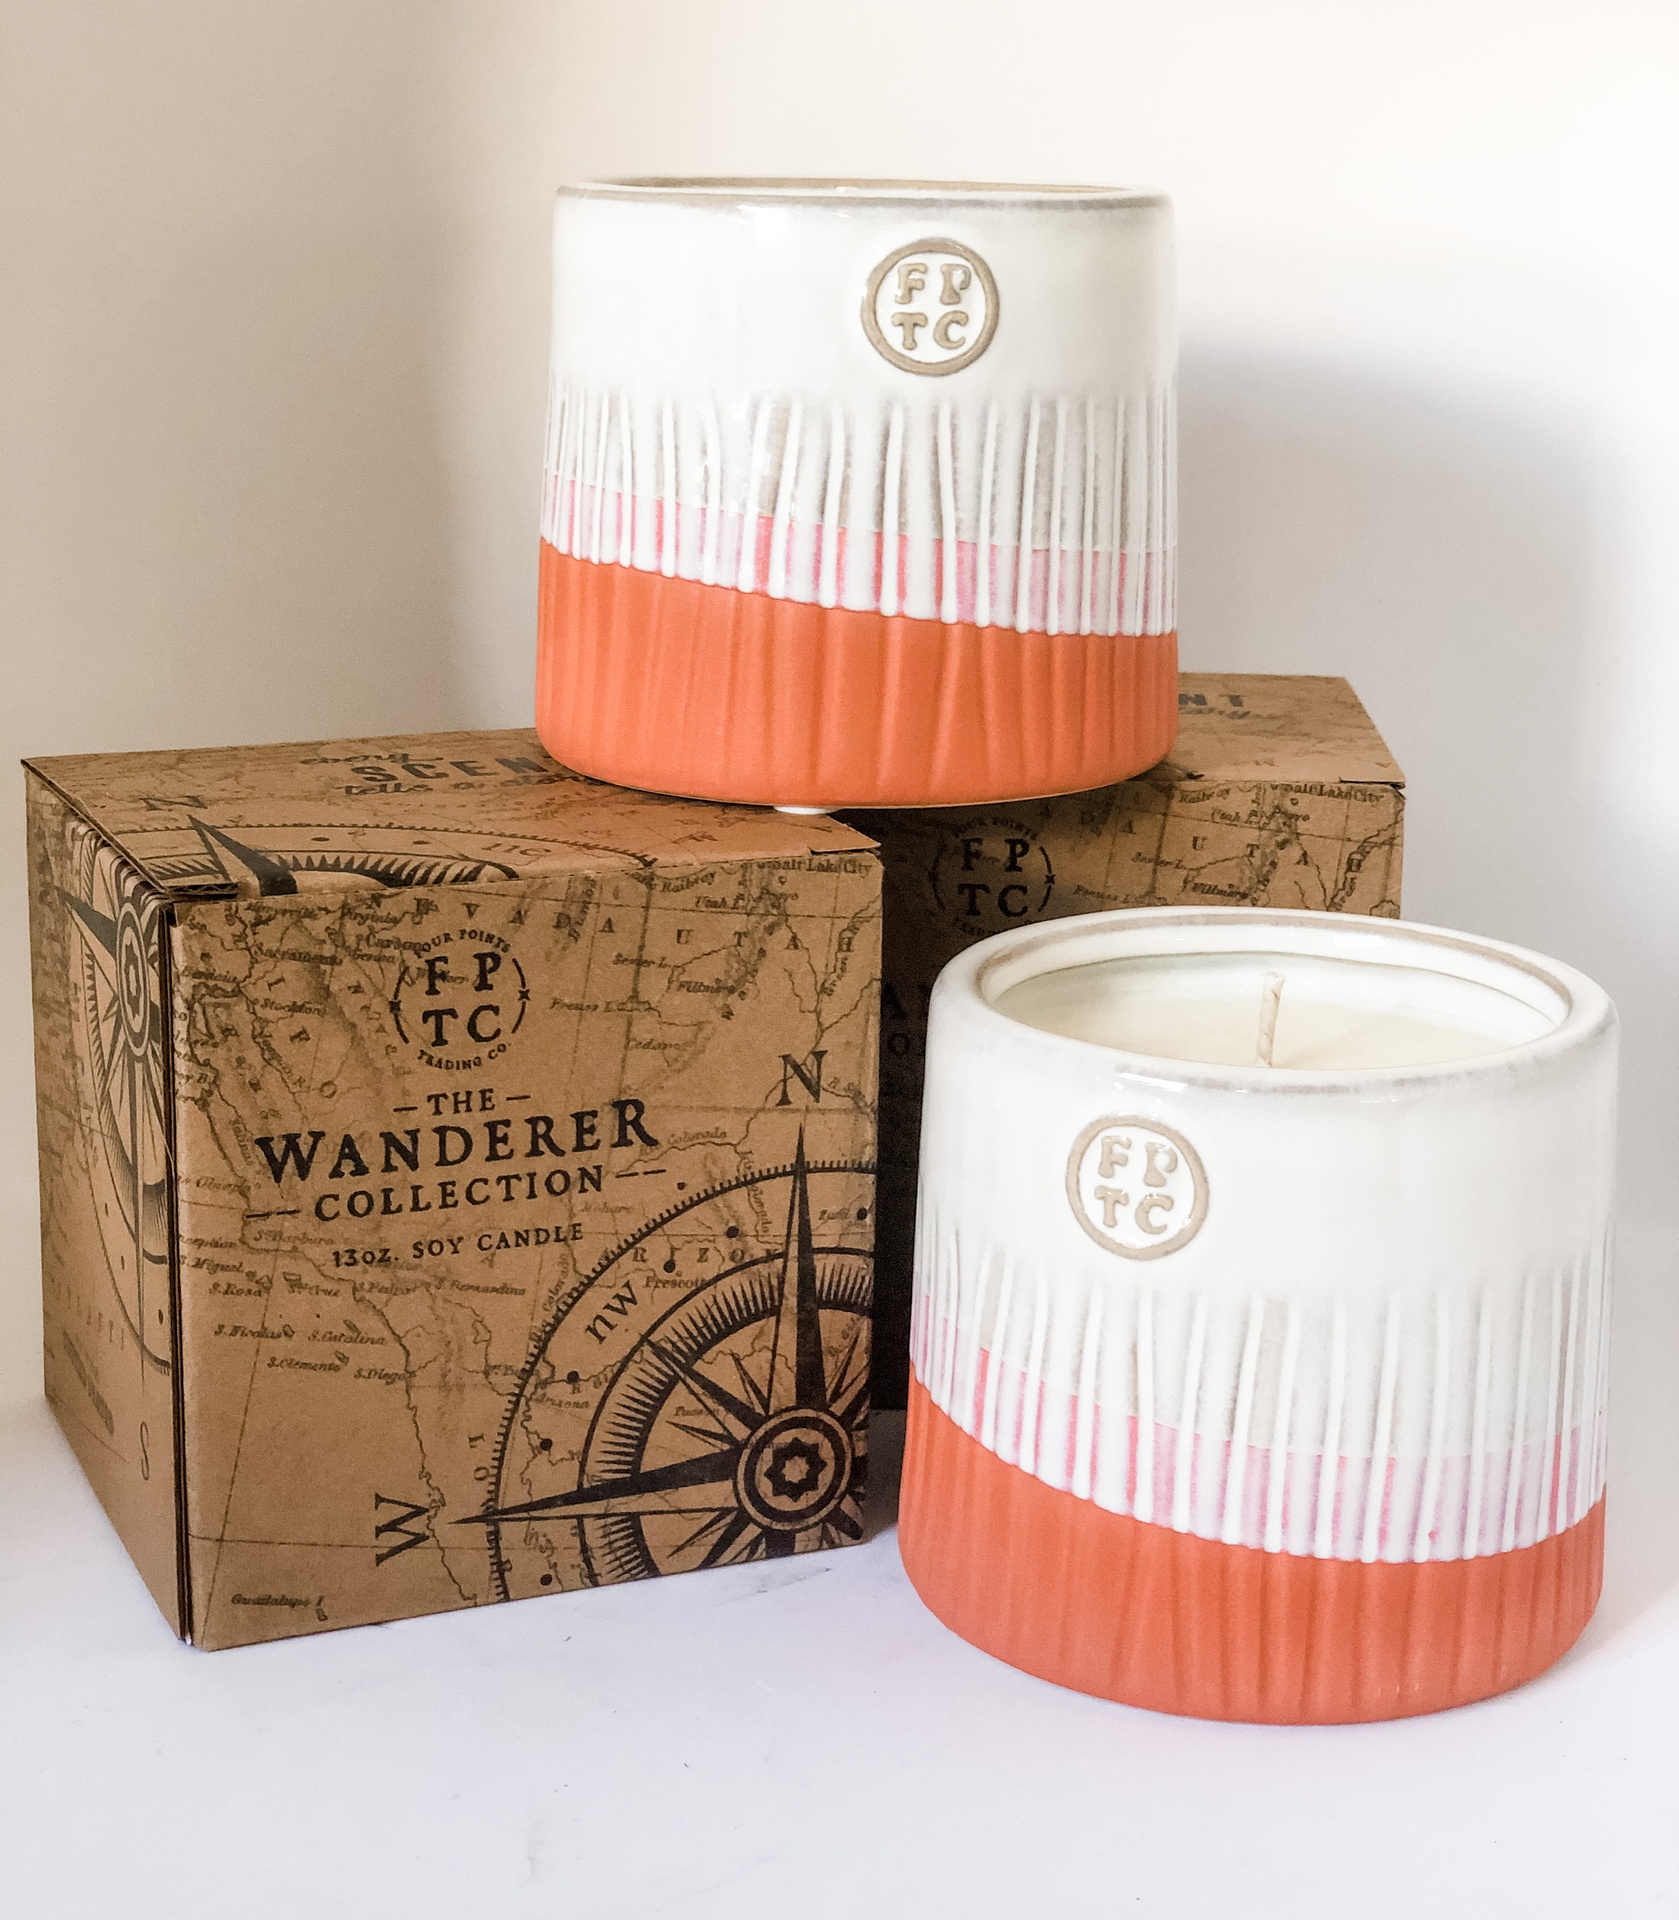 Wanderer Collection 13oz Ceramic Soy Candle